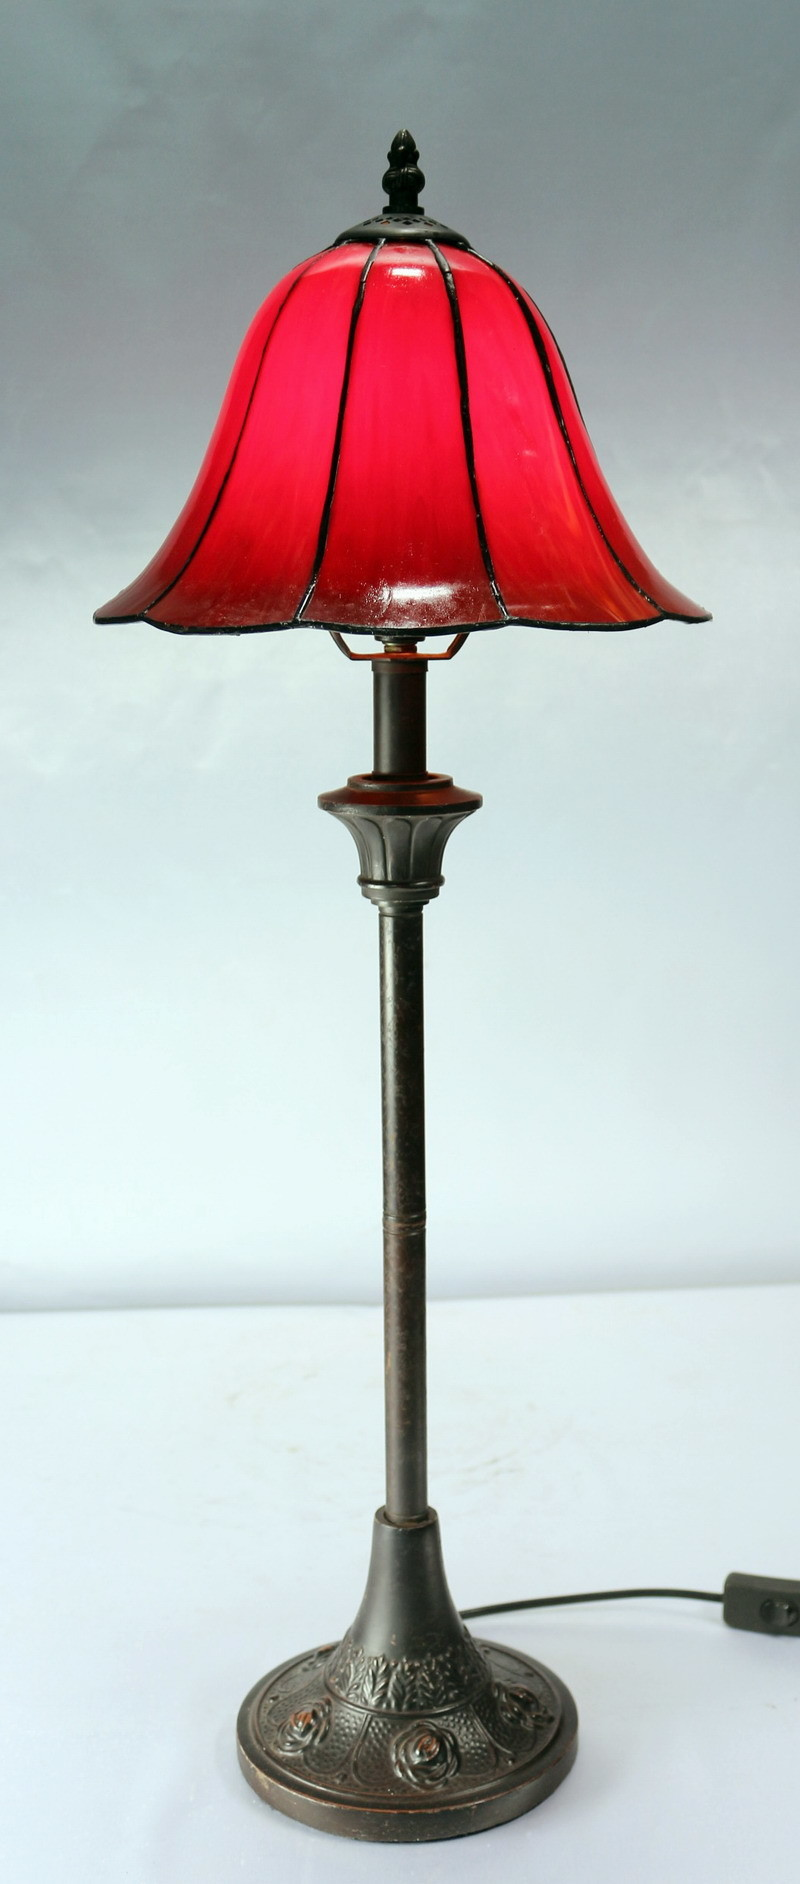 new tall cosmo leadlight table lamp with red shade ebay. Black Bedroom Furniture Sets. Home Design Ideas